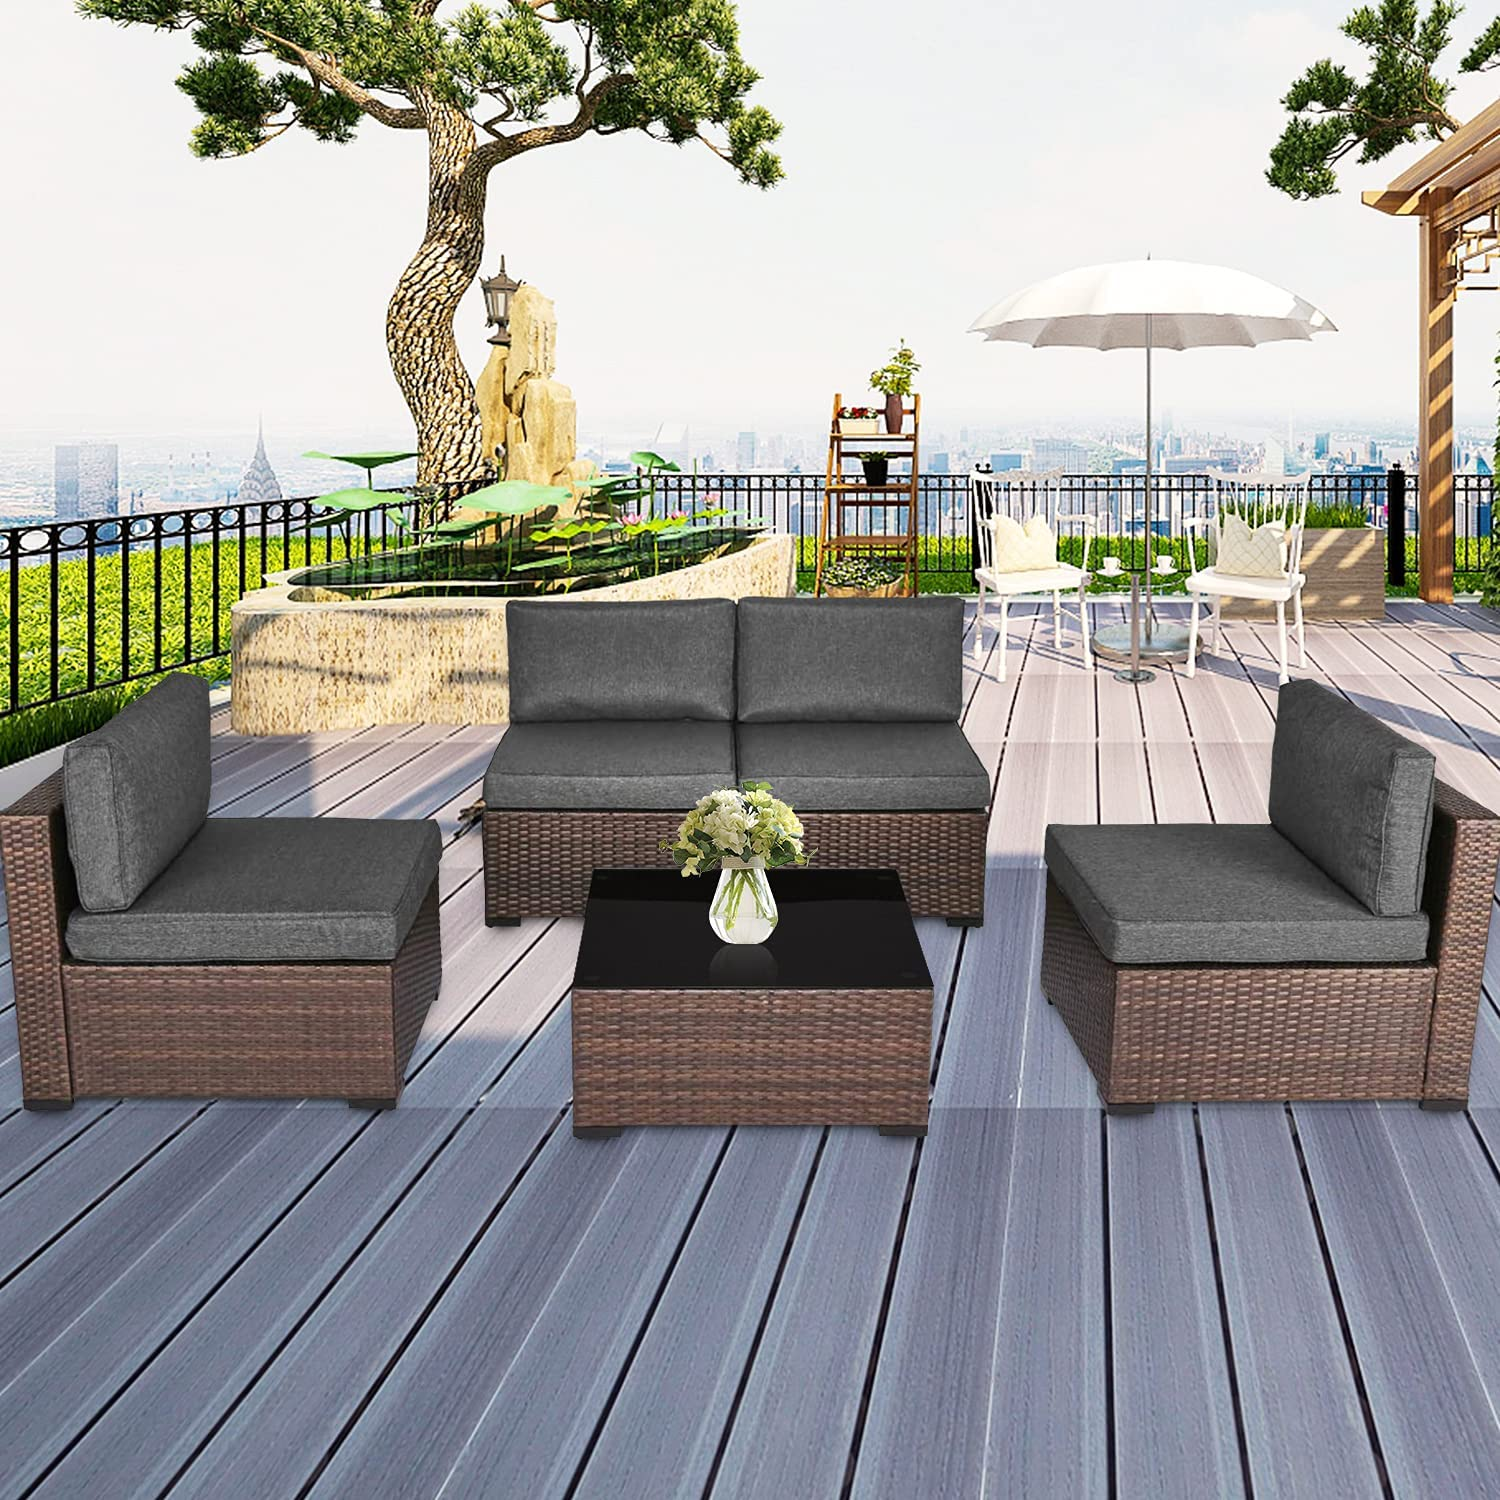 Peach Tree 5 PCs Outdoor Patio Sofa Furniture Set Sale item Wicker Super popular specialty store Chairs